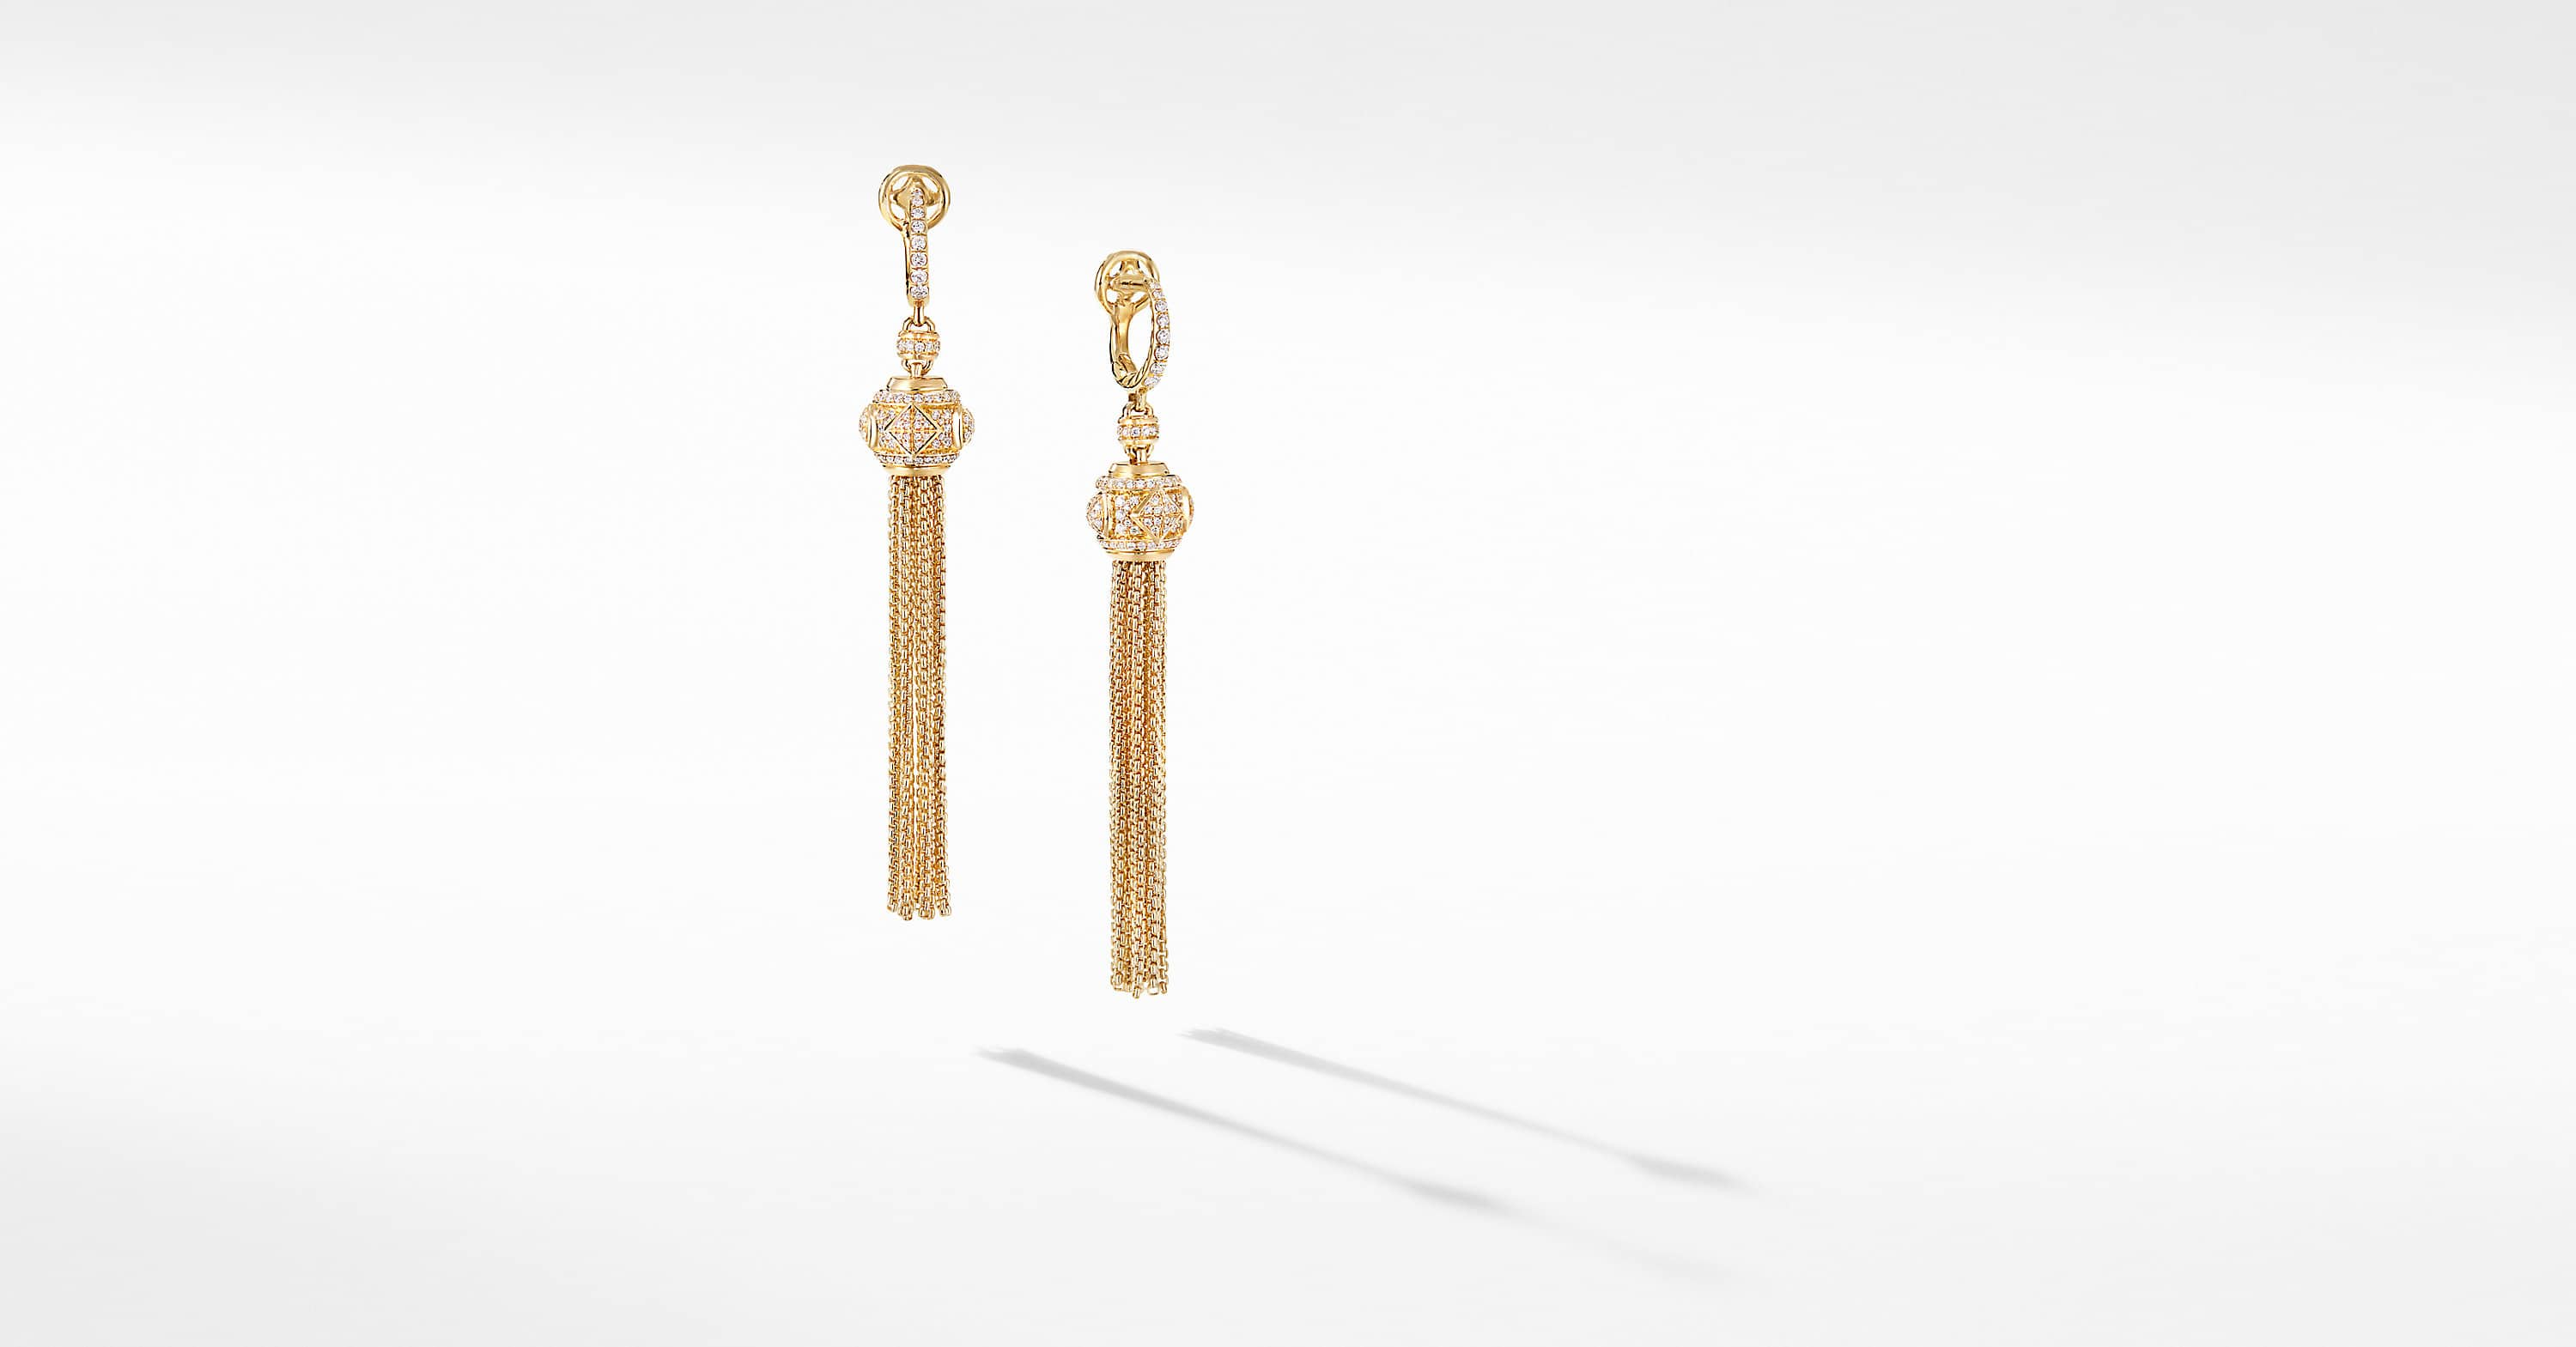 Renaissance Tassel Earrings in 18K Yellow Gold with Full Pavé